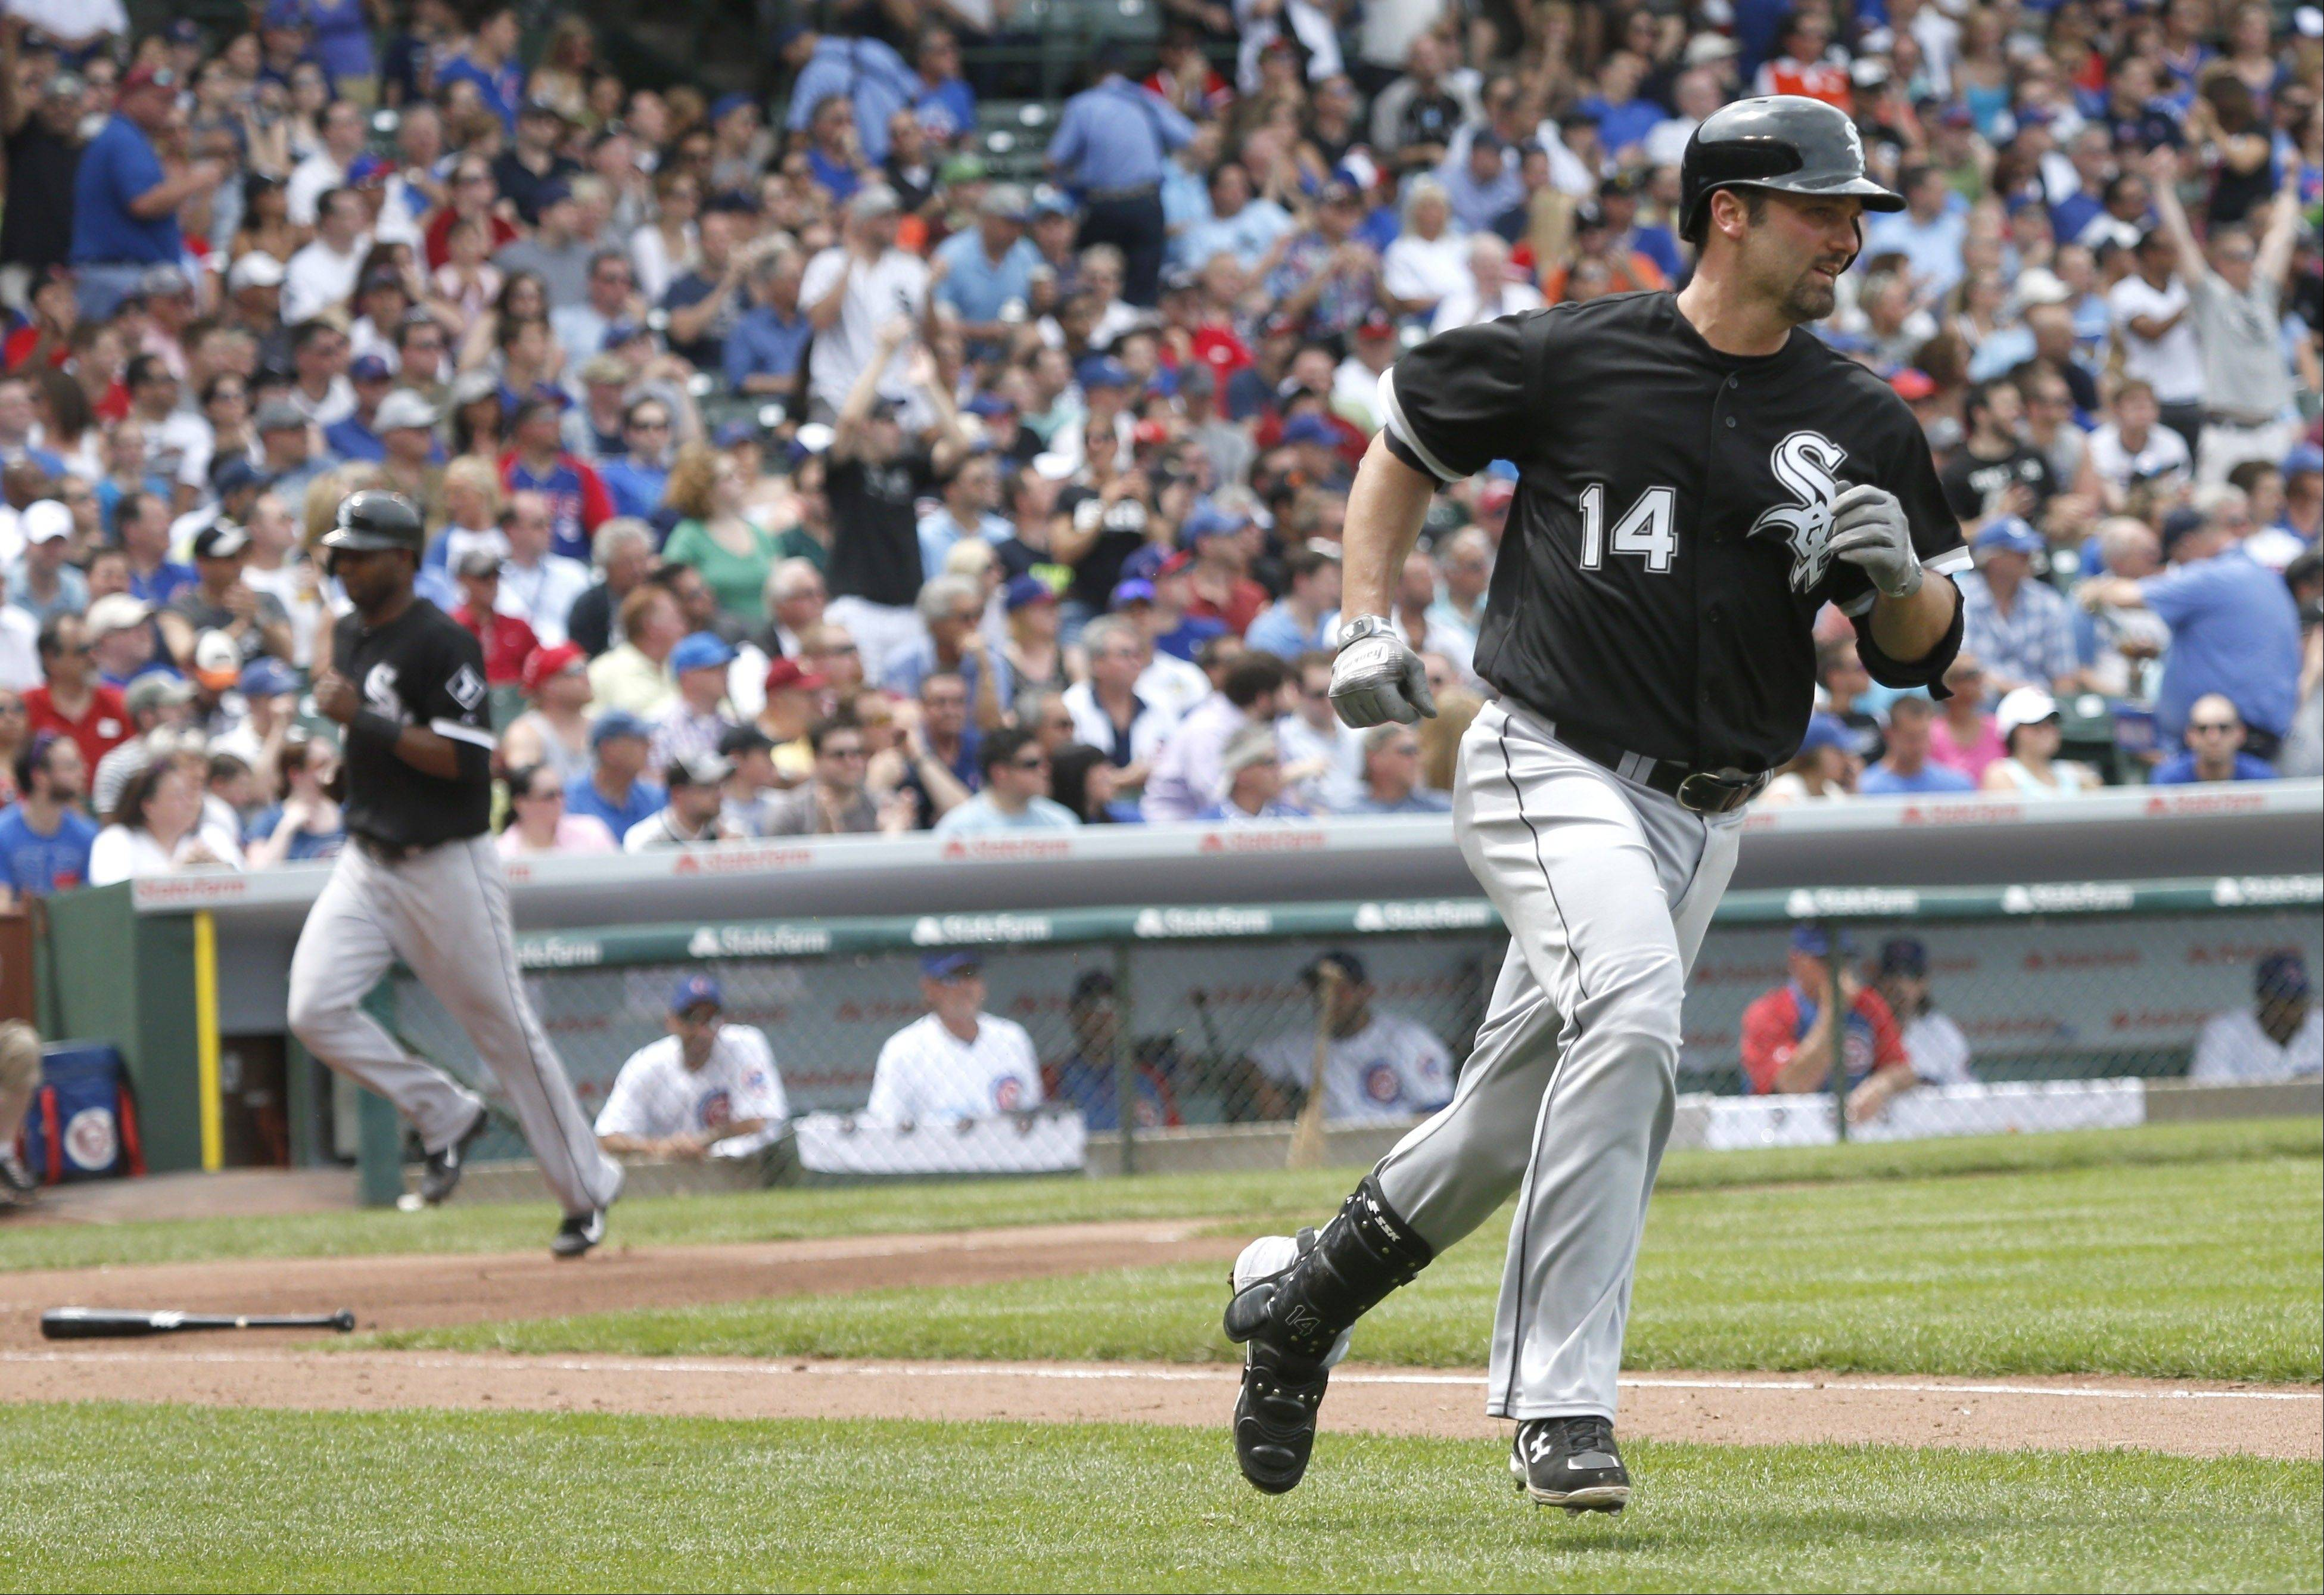 Chicago White Sox's Paul Konerko (14) heads to first after hitting an RBI single off Chicago Cubs starting pitcher Travis Wood, scoring Alejandro De Aza, left, during the third inning of an interleague baseball game Thursday, May 30, 2013, in Chicago.